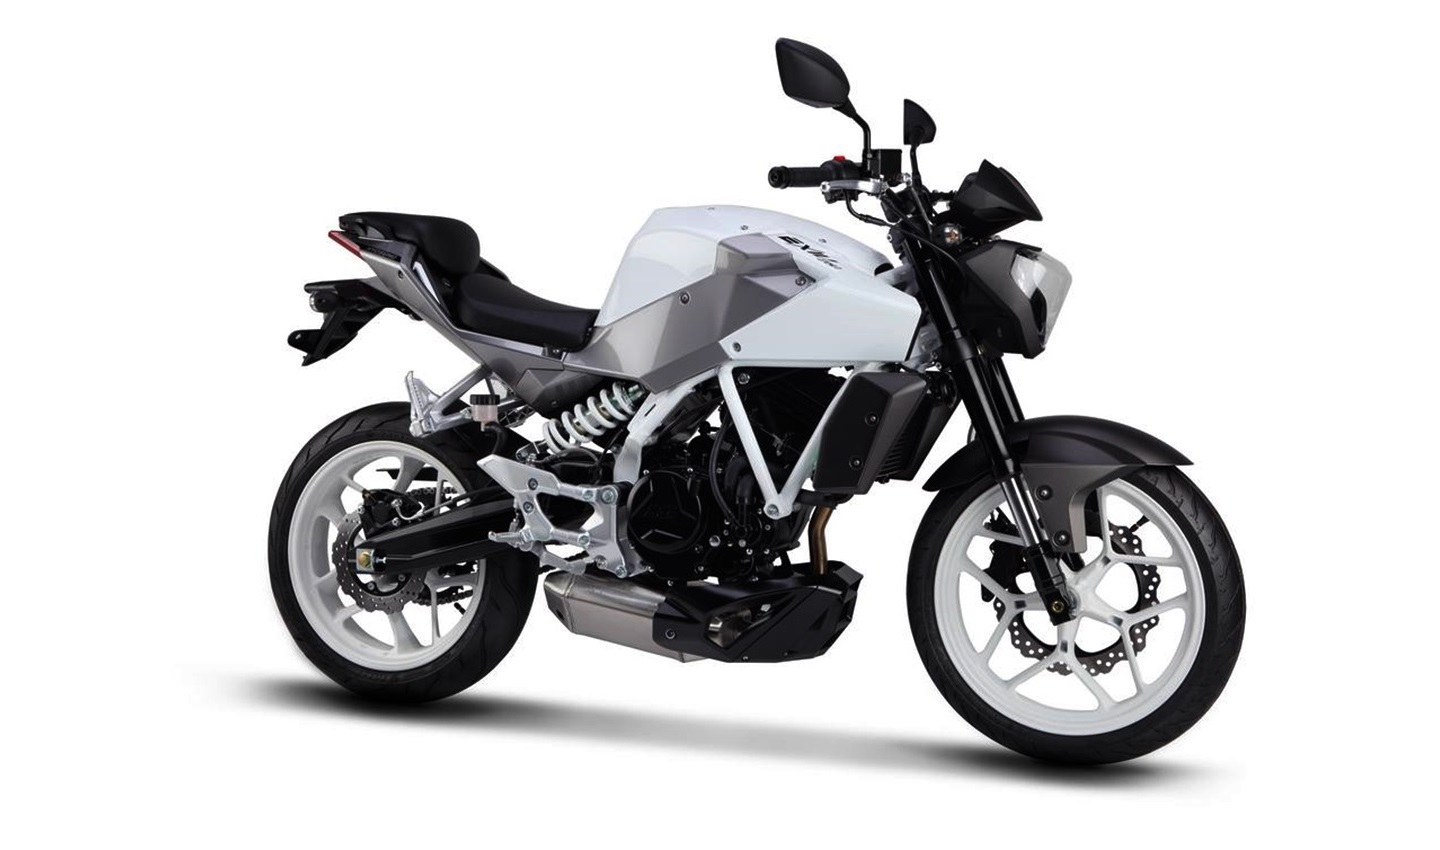 Hyosung Aquila 250 Limited Edition Launched @ INR 2.94 lakh